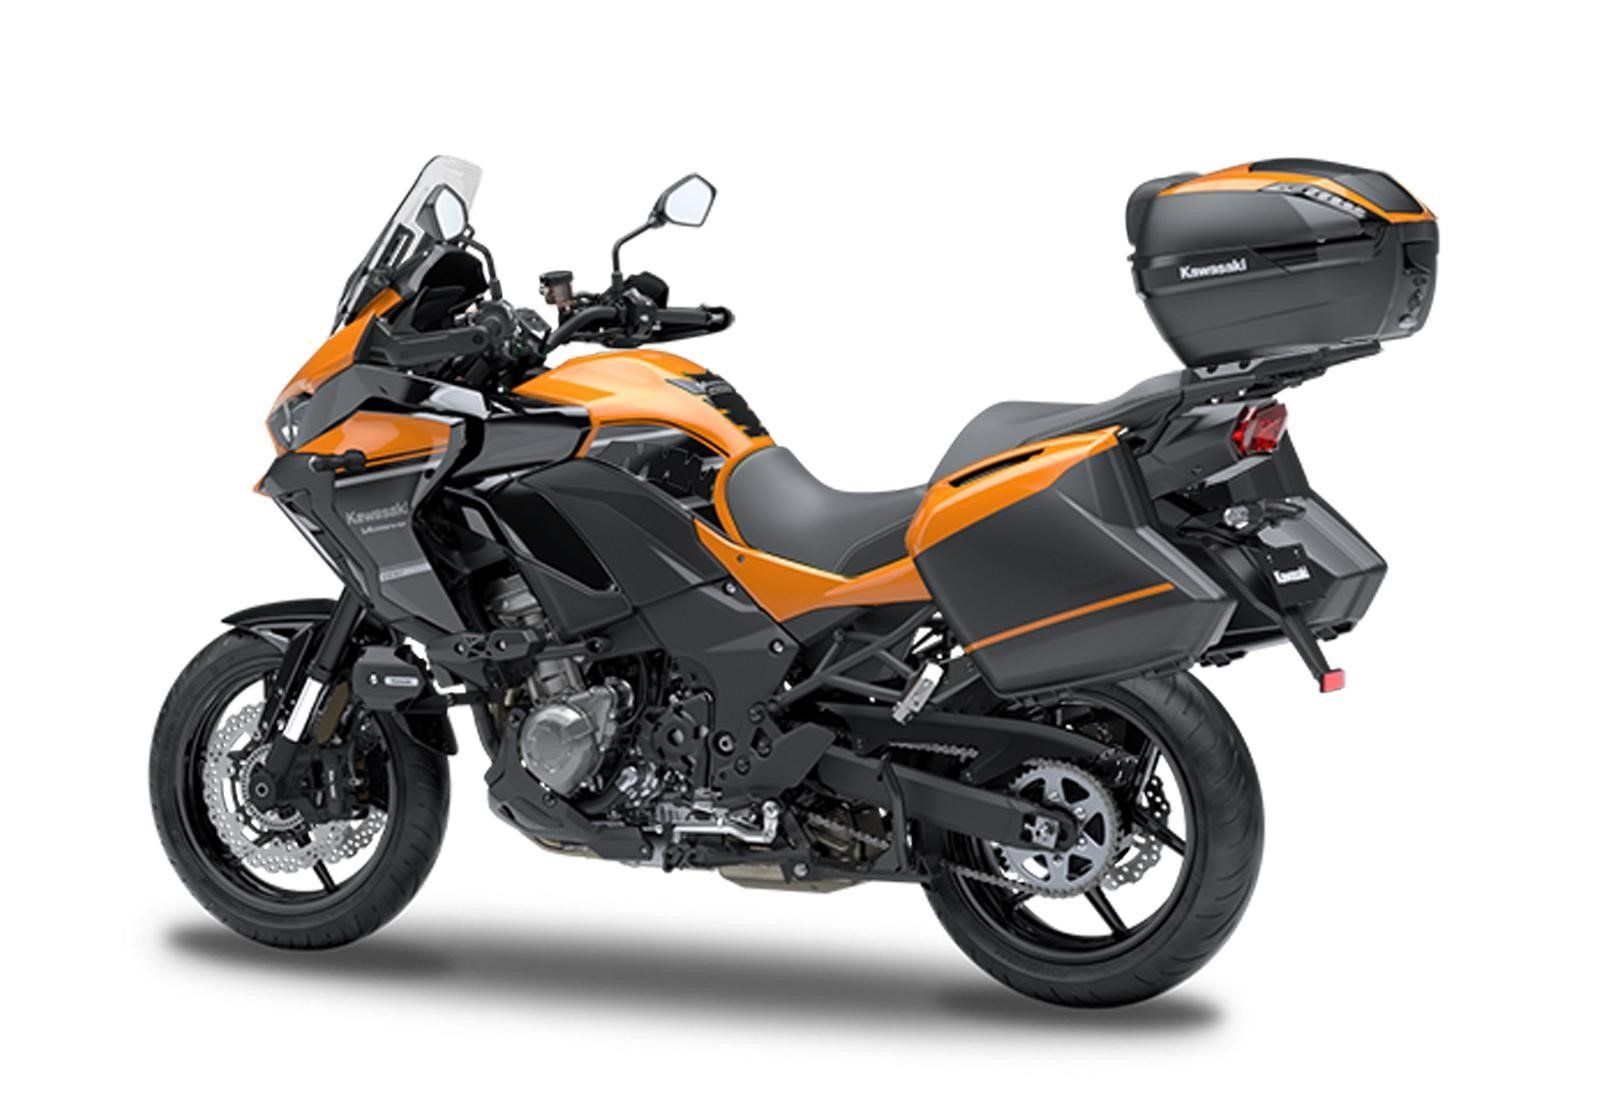 NEW 2019 Kawasaki Versys 1000 GT £1,000 PAID, FREE DELIVERY For Sale (picture 2 of 6)